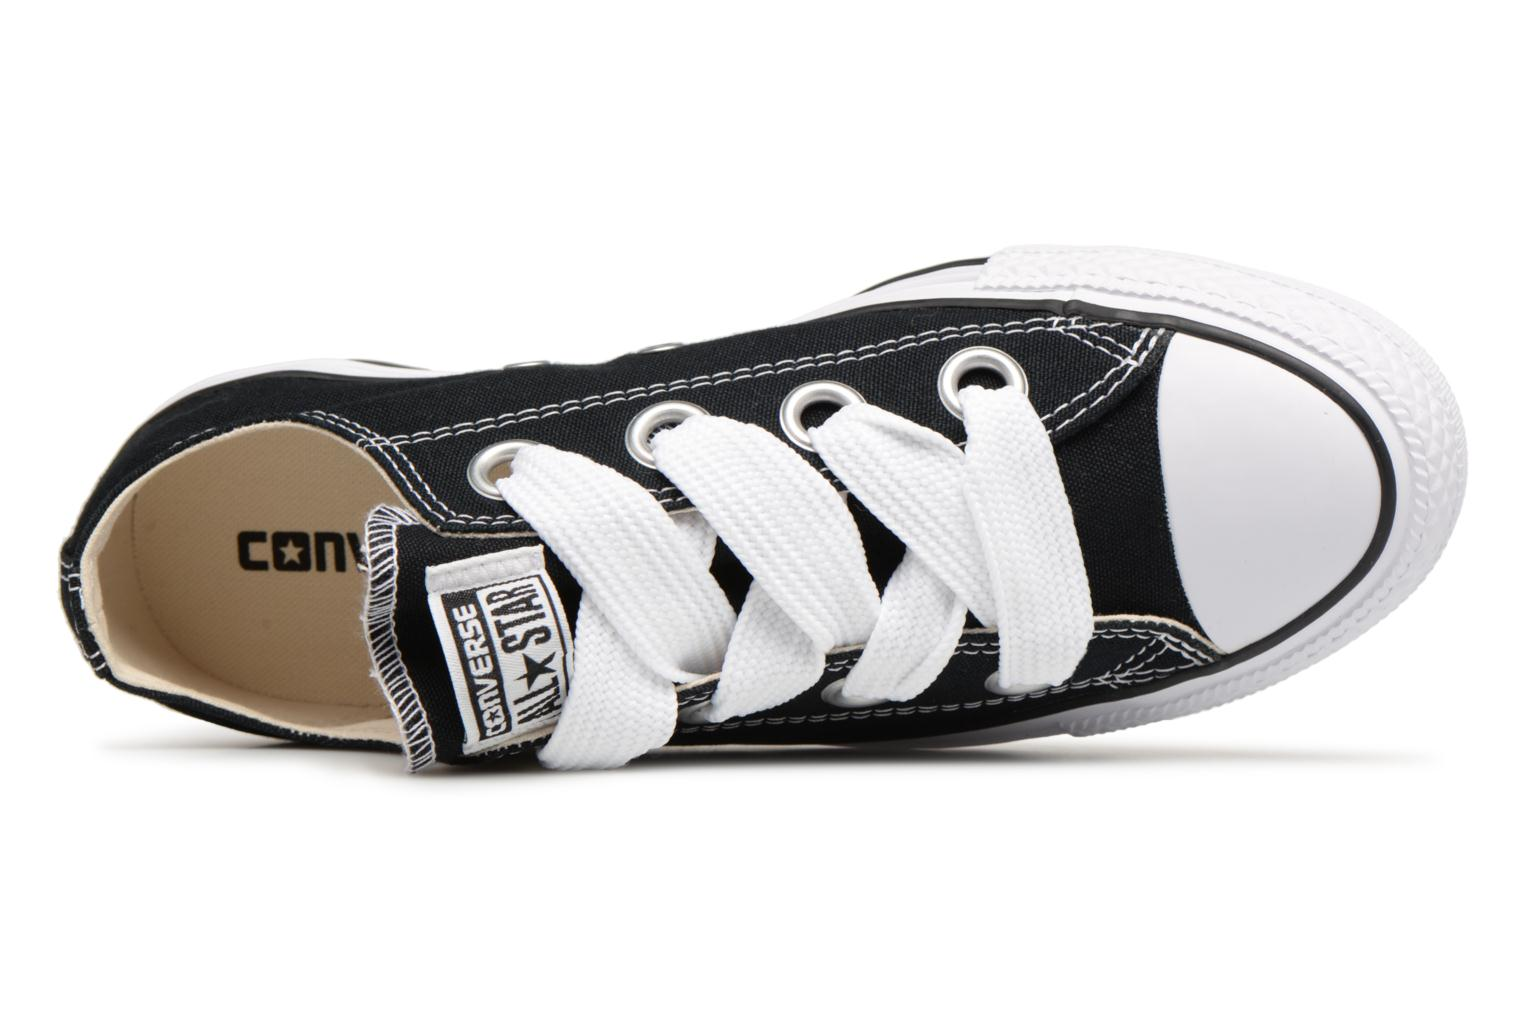 Eyelets Big Converse Star Chuck Taylor Black All White Ox Natural TvwwXI1